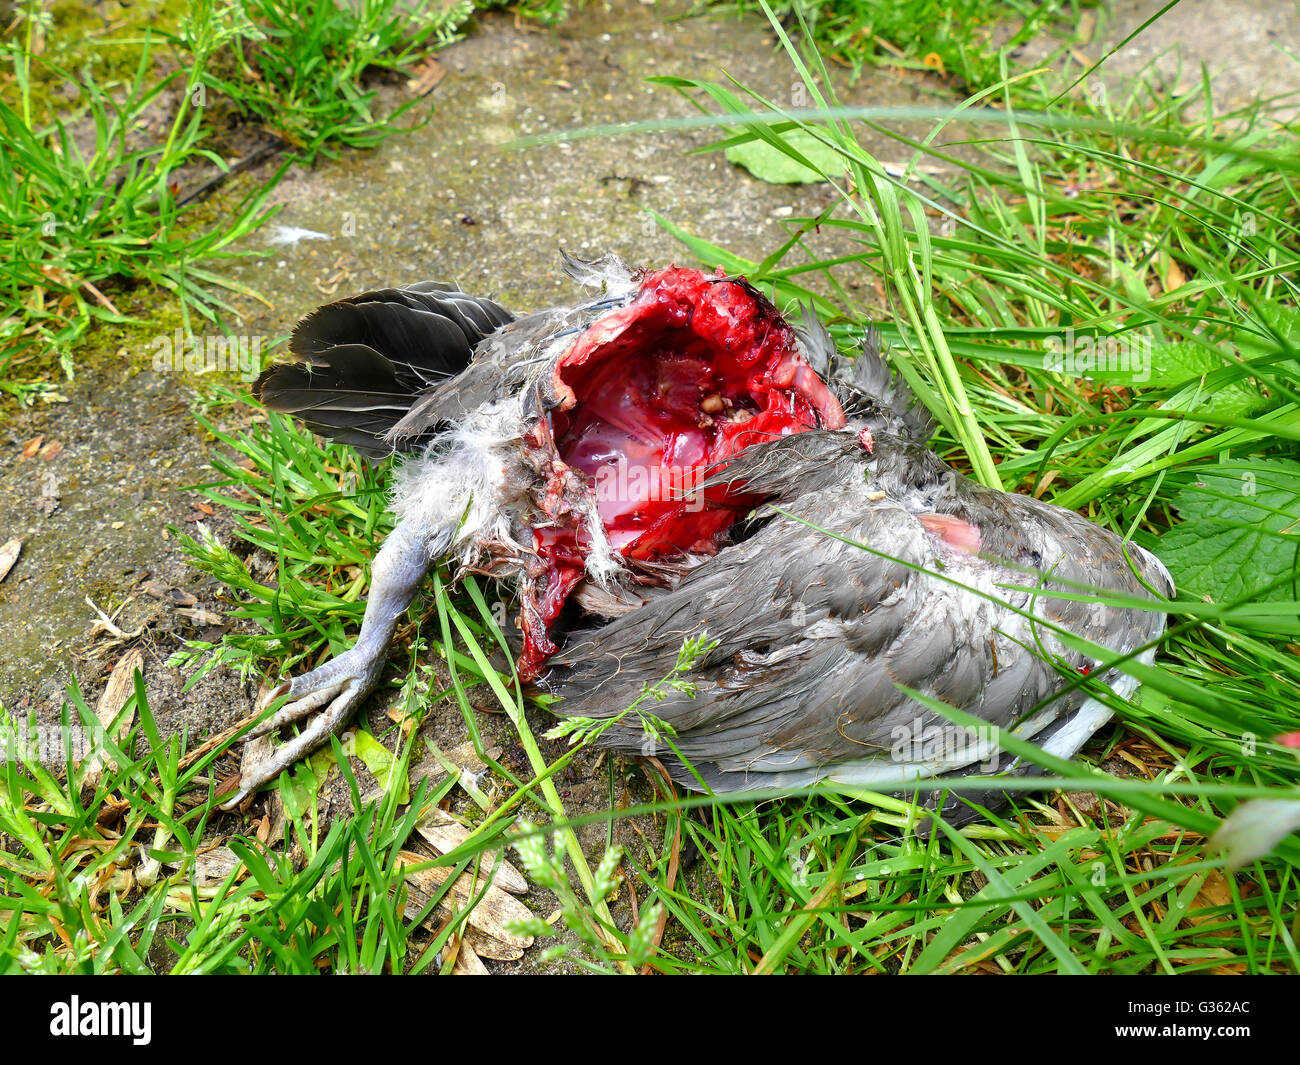 Dead dove, killed by cats, on the ground. Bloody photograph - Stock Image